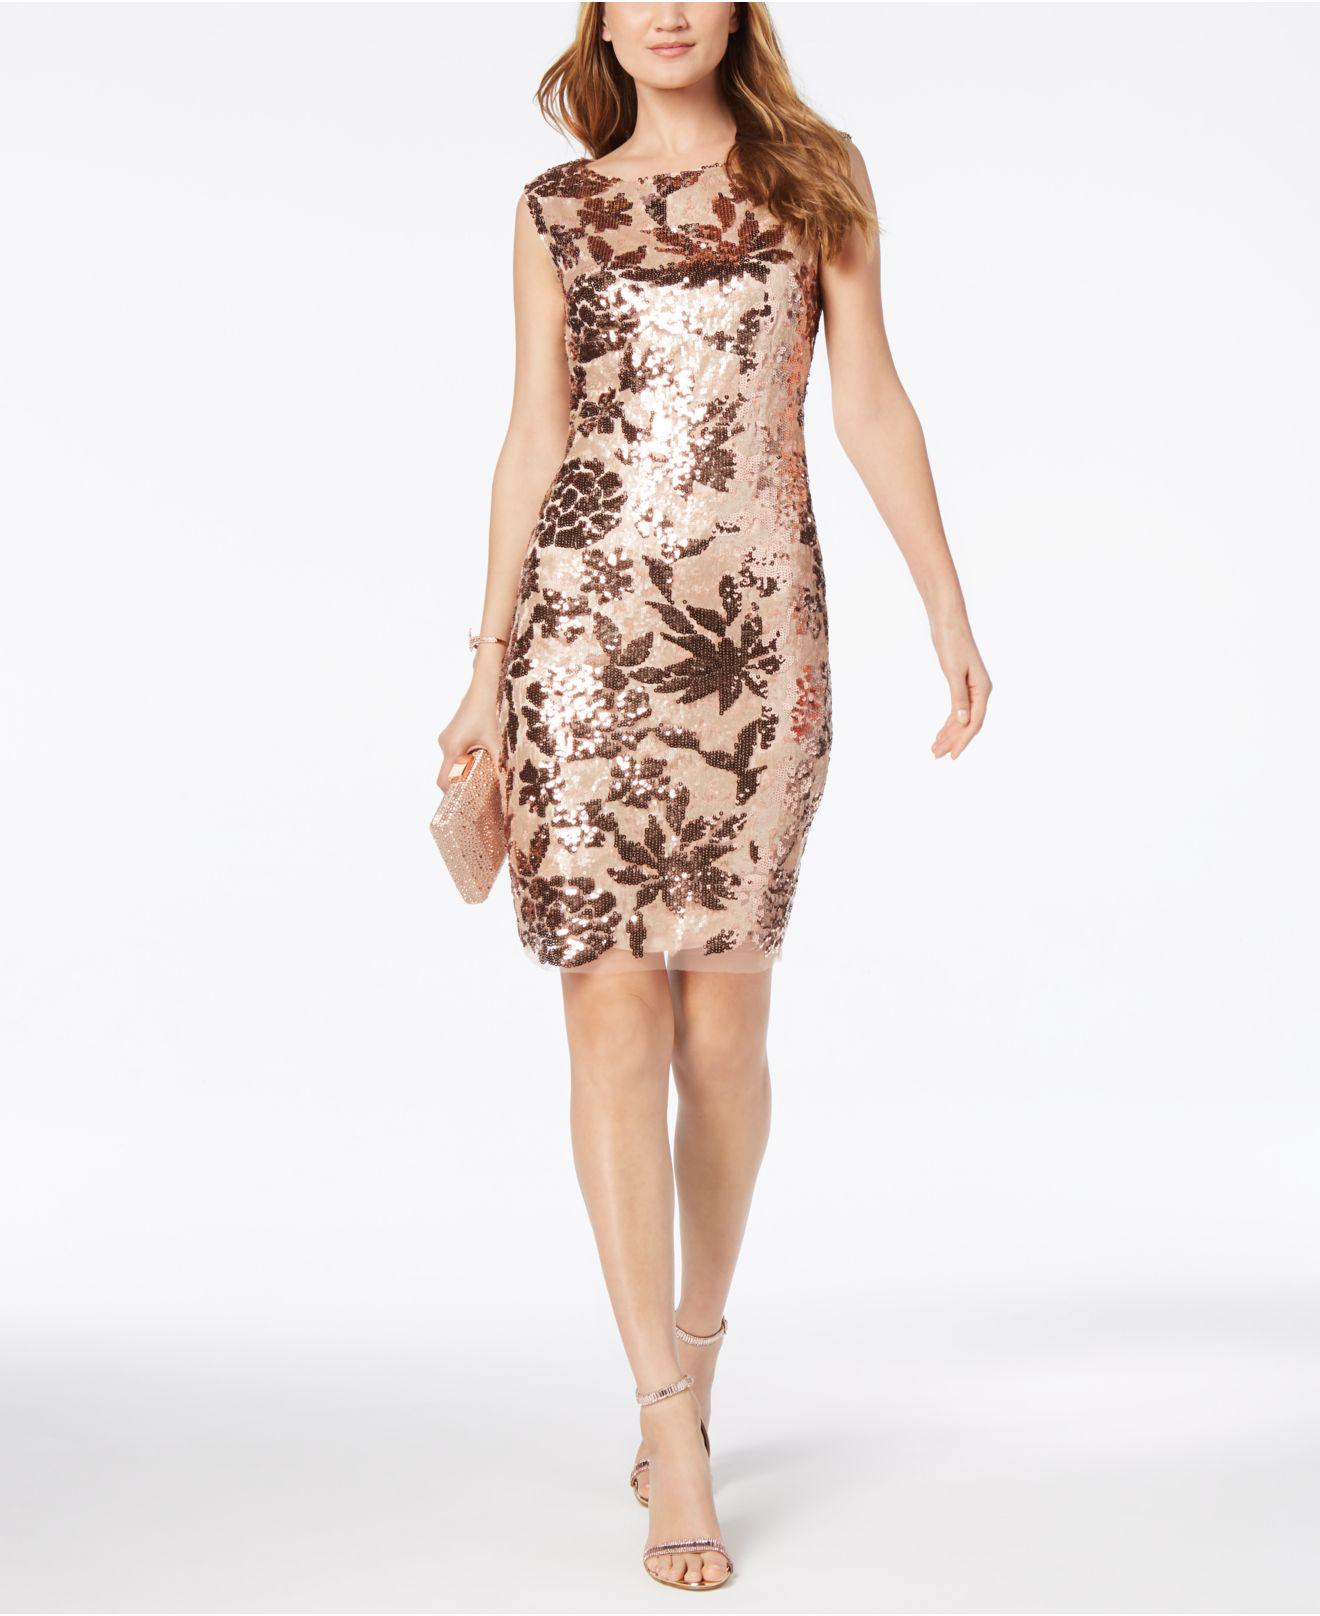 4559edc7aee2 Vince Camuto Floral Sequined Dress in Pink - Lyst